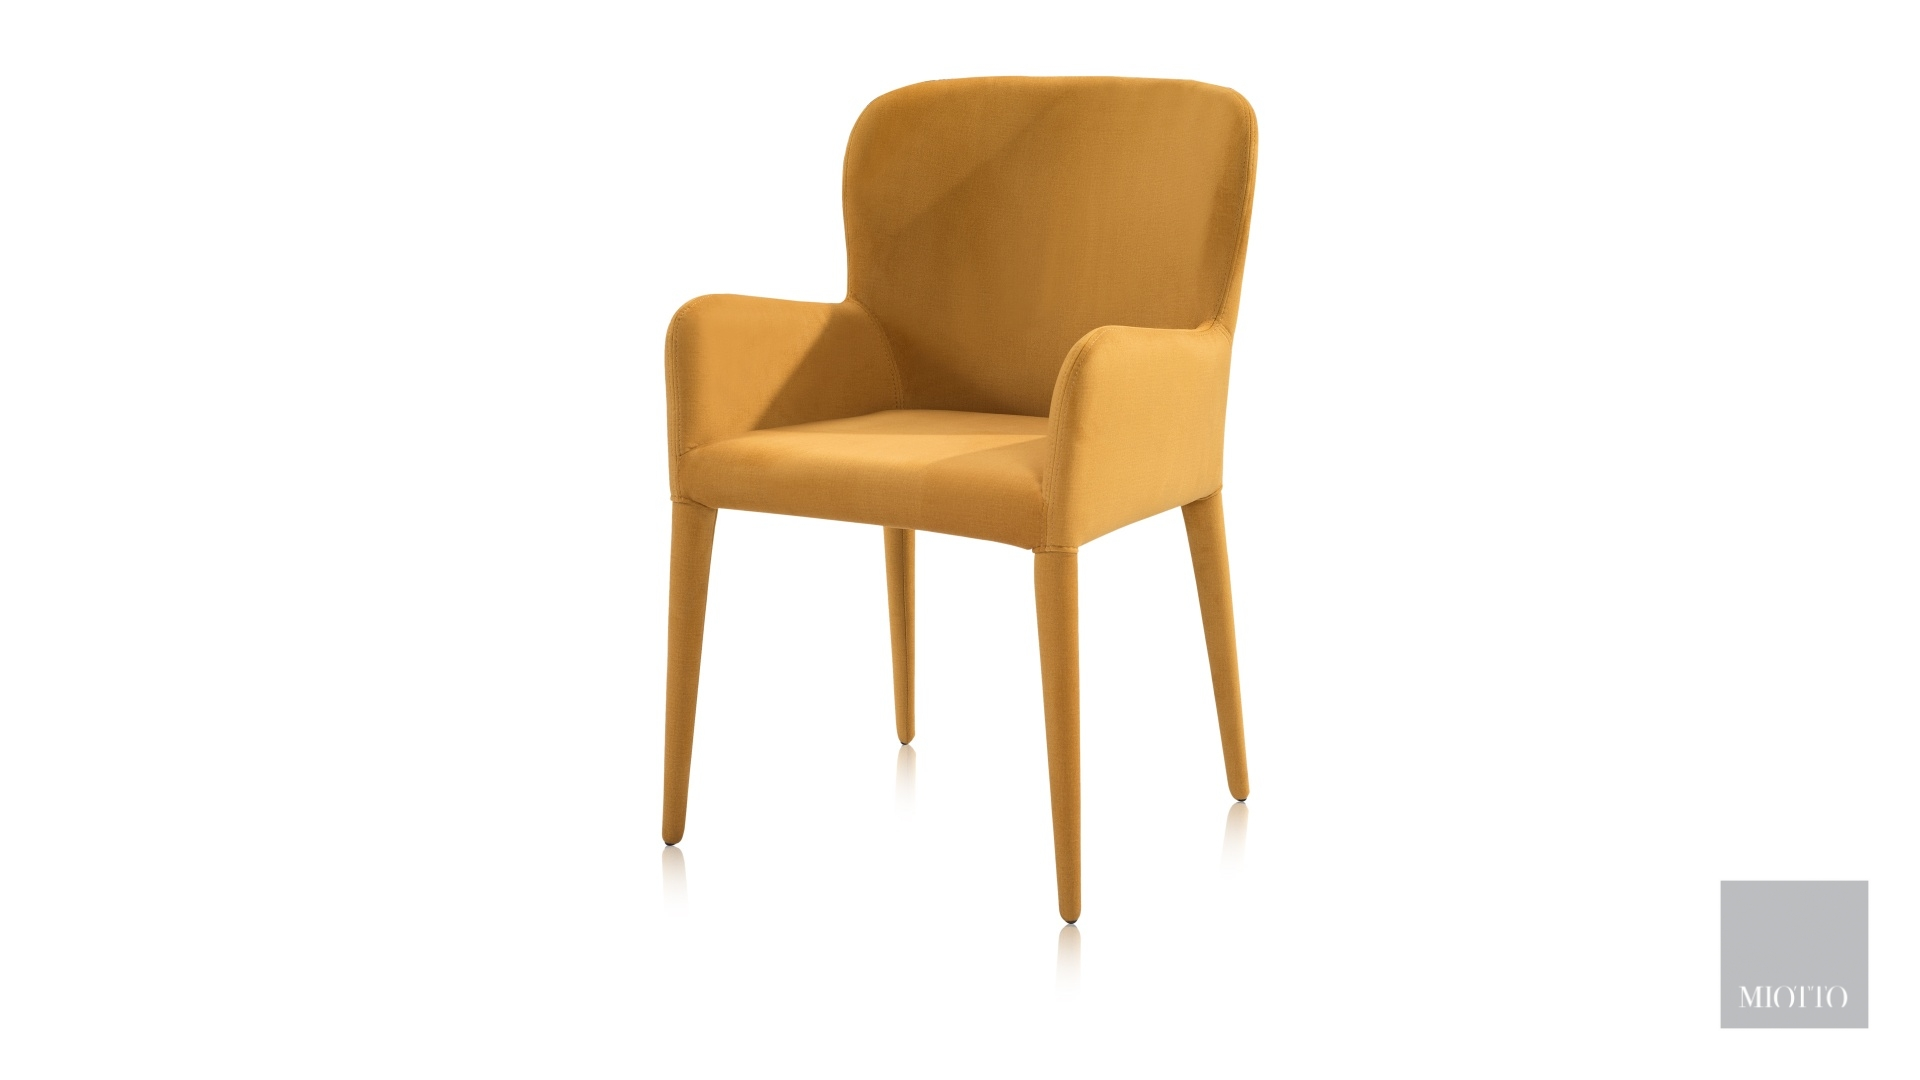 miotto_Aviano dining armchair yellow miotto furniture